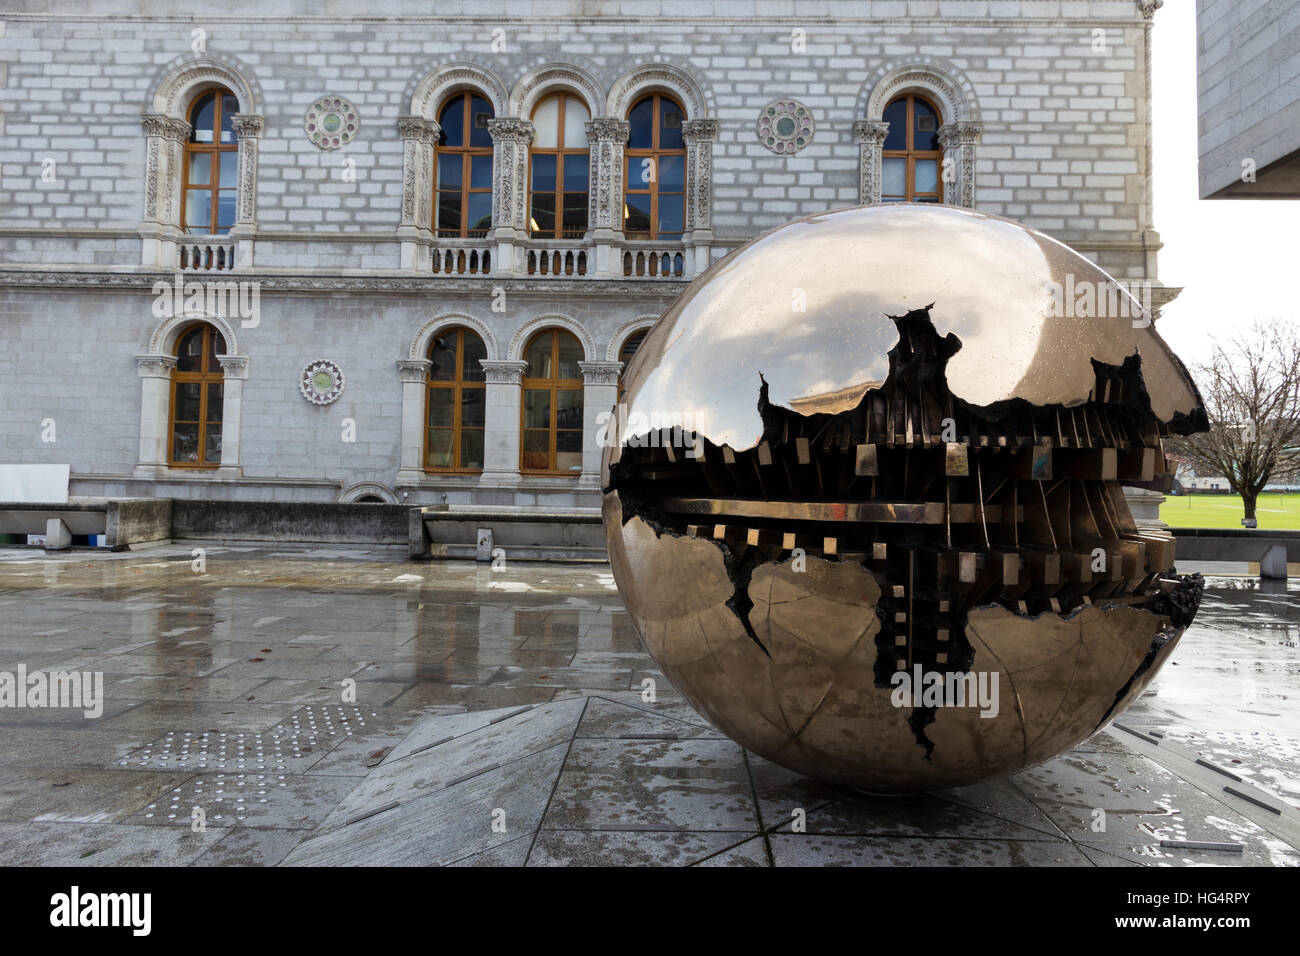 Abstract spherical metal sculpture on a courtyard of Trinity College, Dublin. - Stock Image